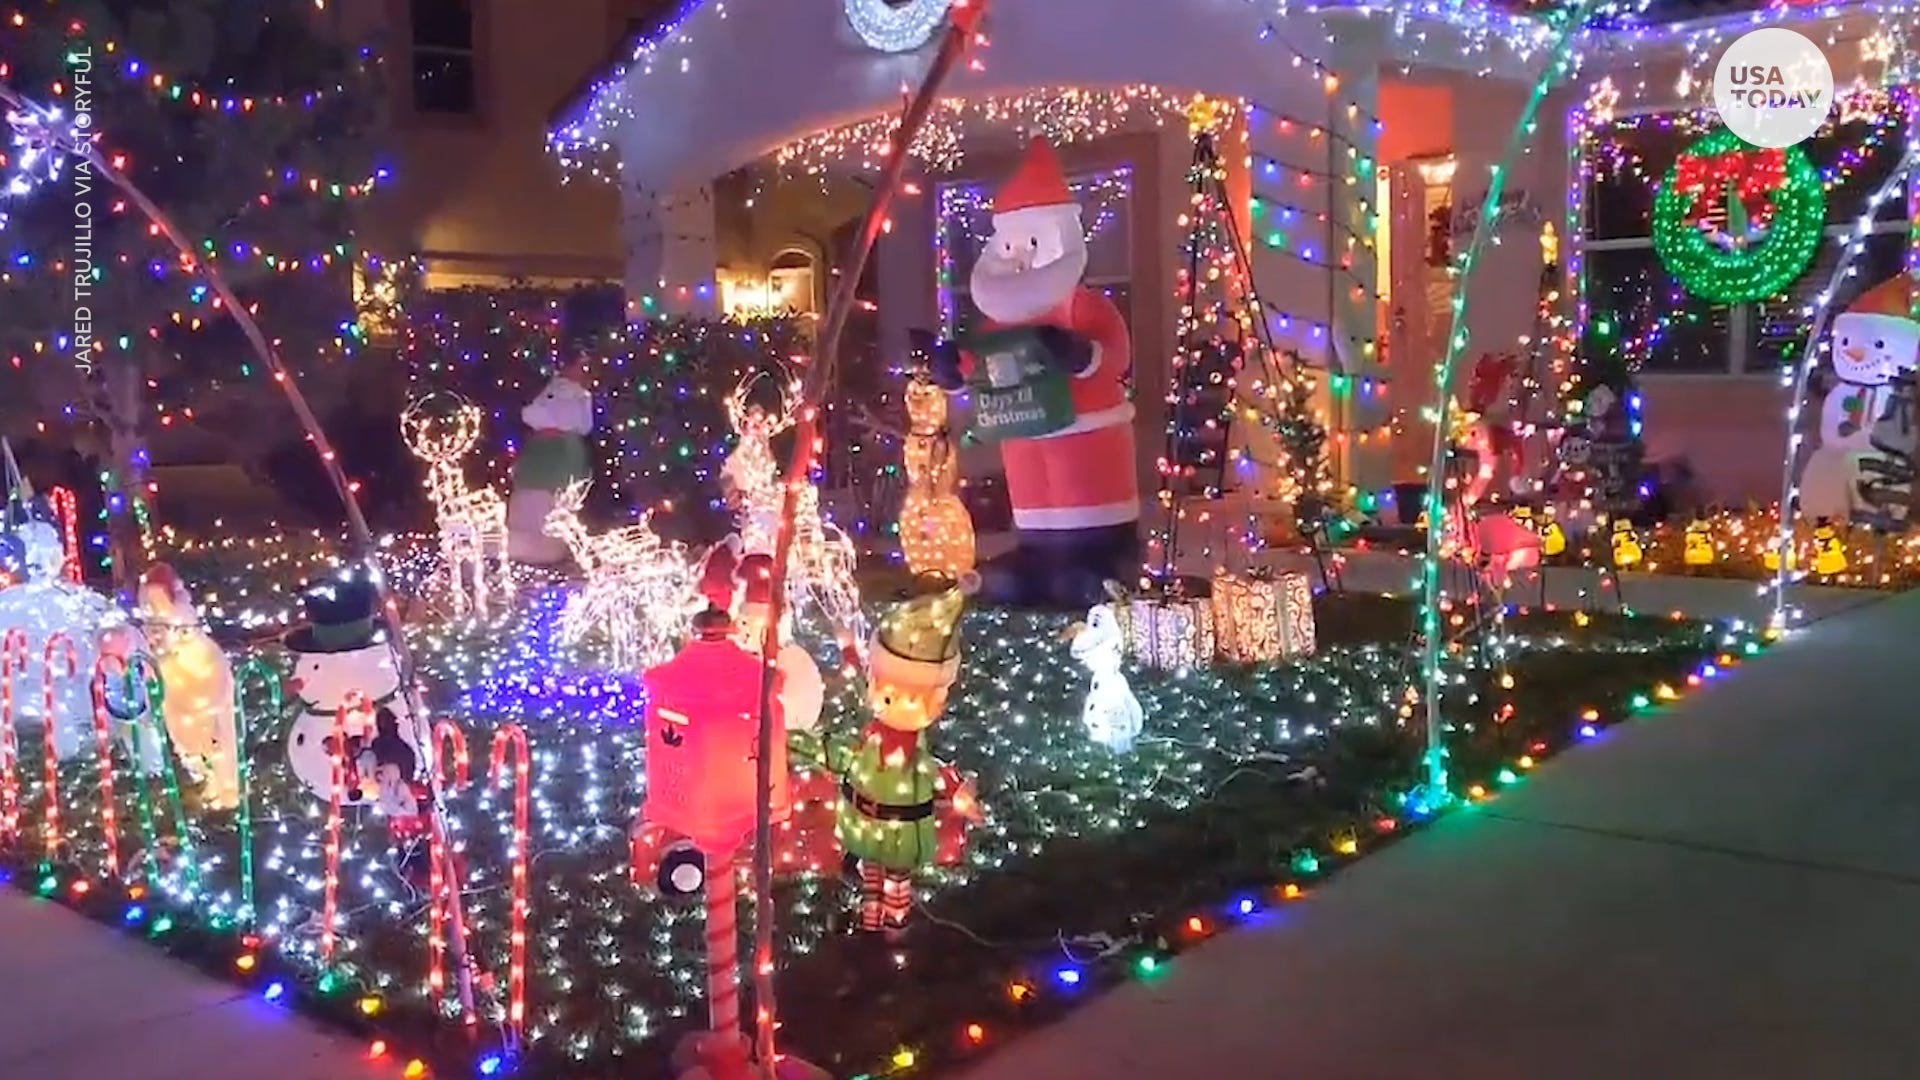 Twinkling home winter wonderland helps make spirits bright in Albuquerque, New Mexico